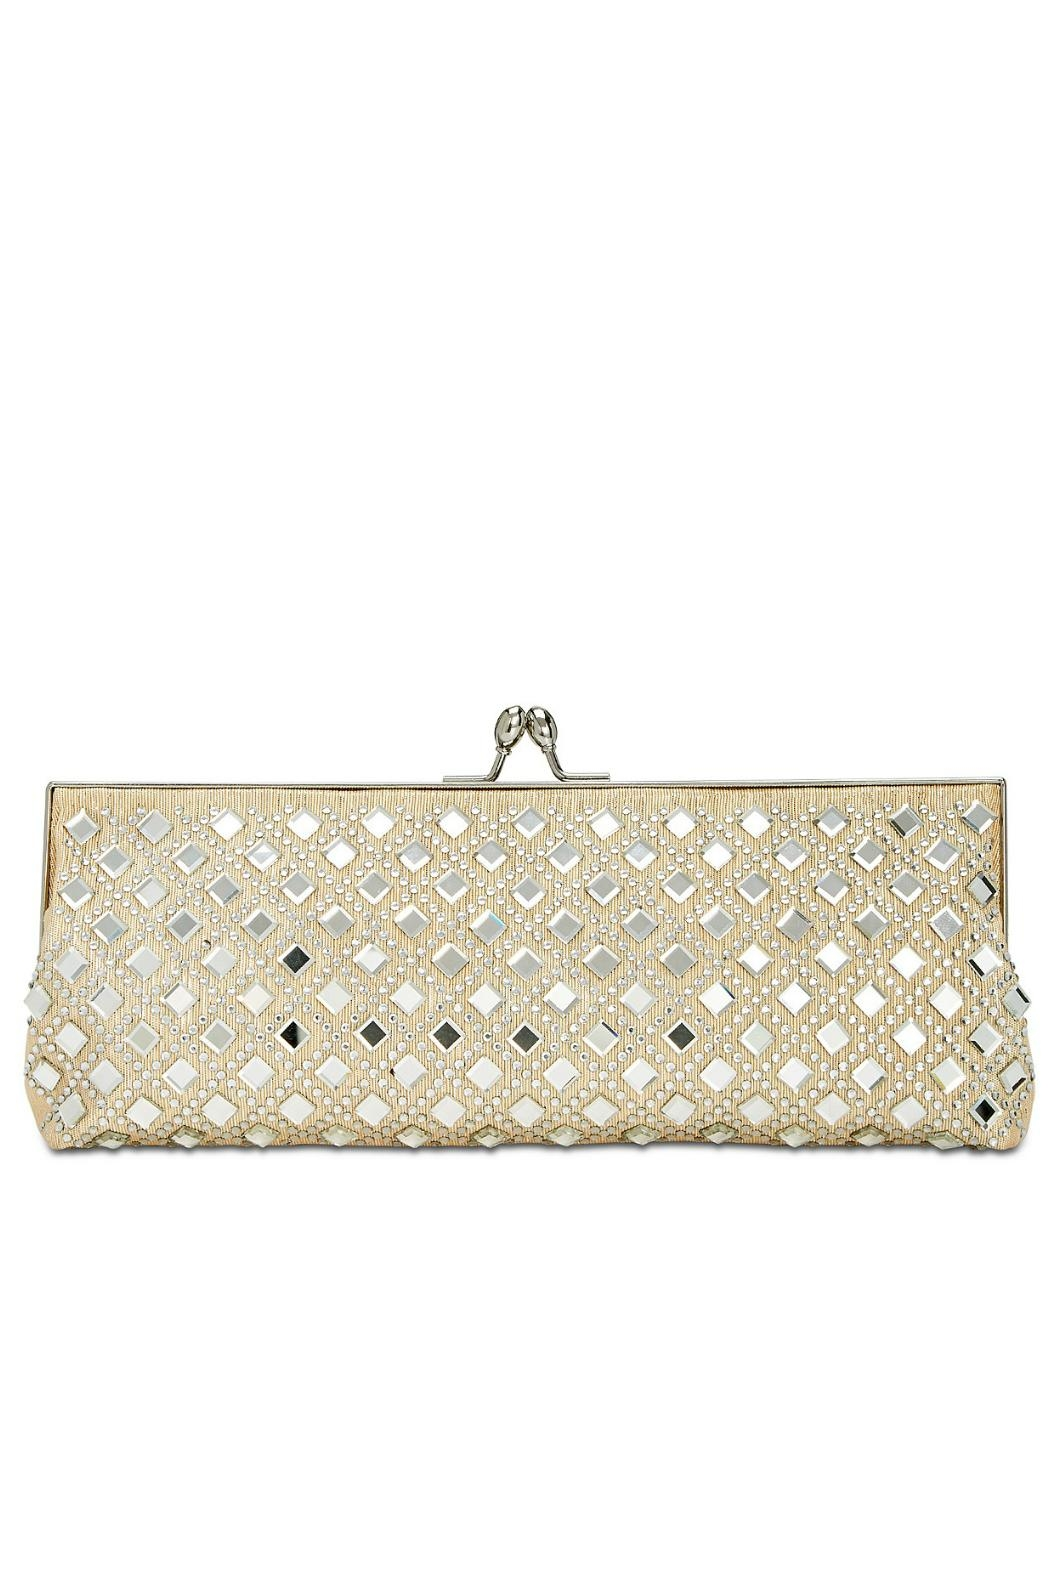 Adrianna Papell Nicola Mirrored Clutch - Main Image